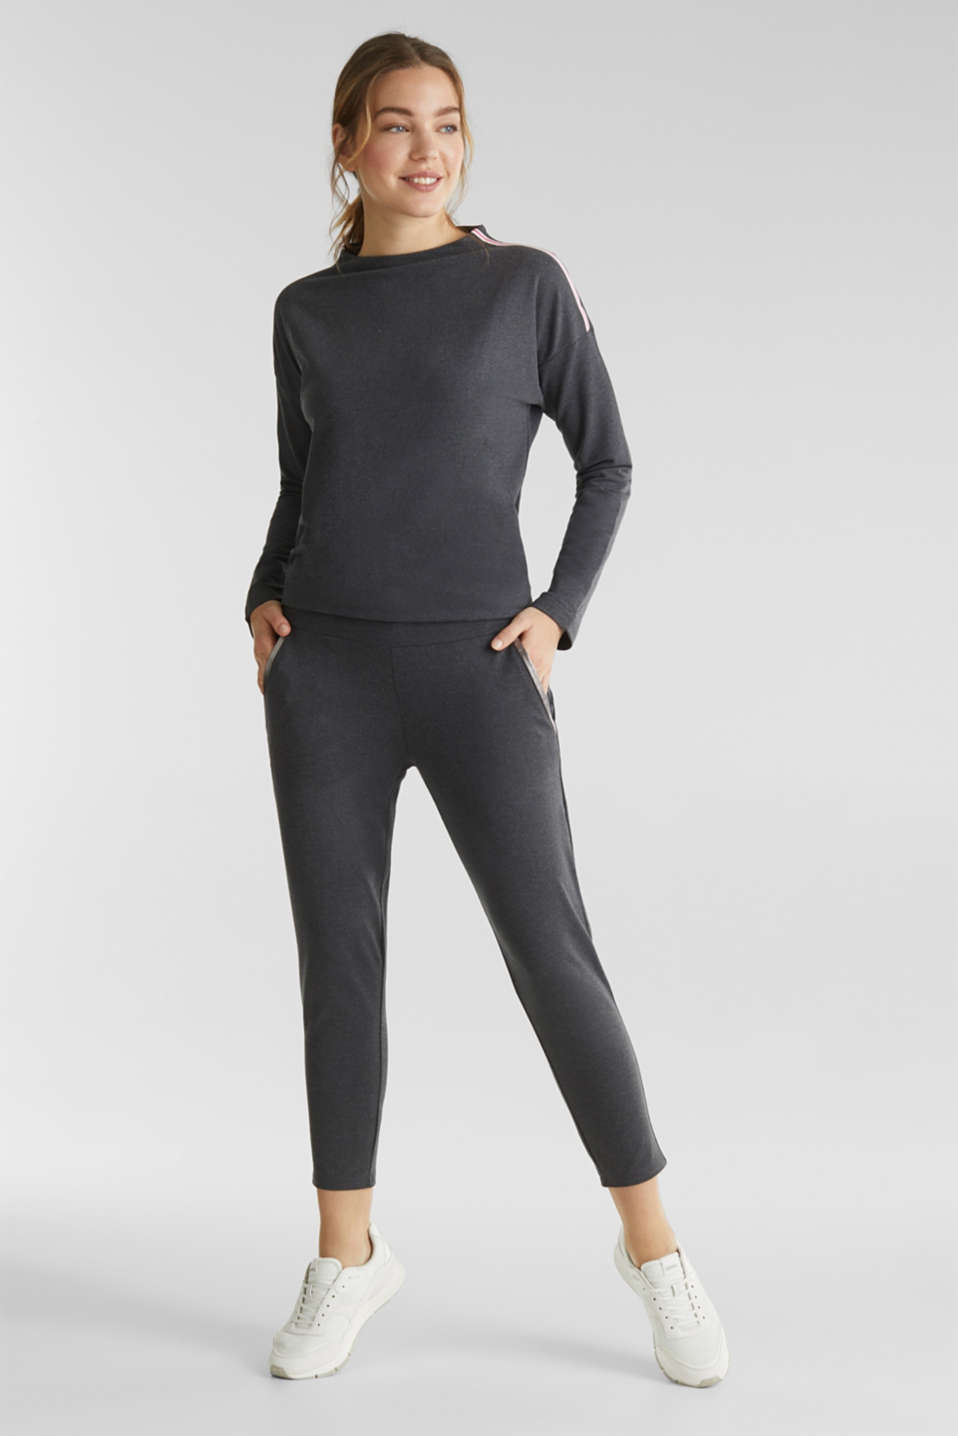 Esprit - Ankle-length stretch jersey trousers with shiny details